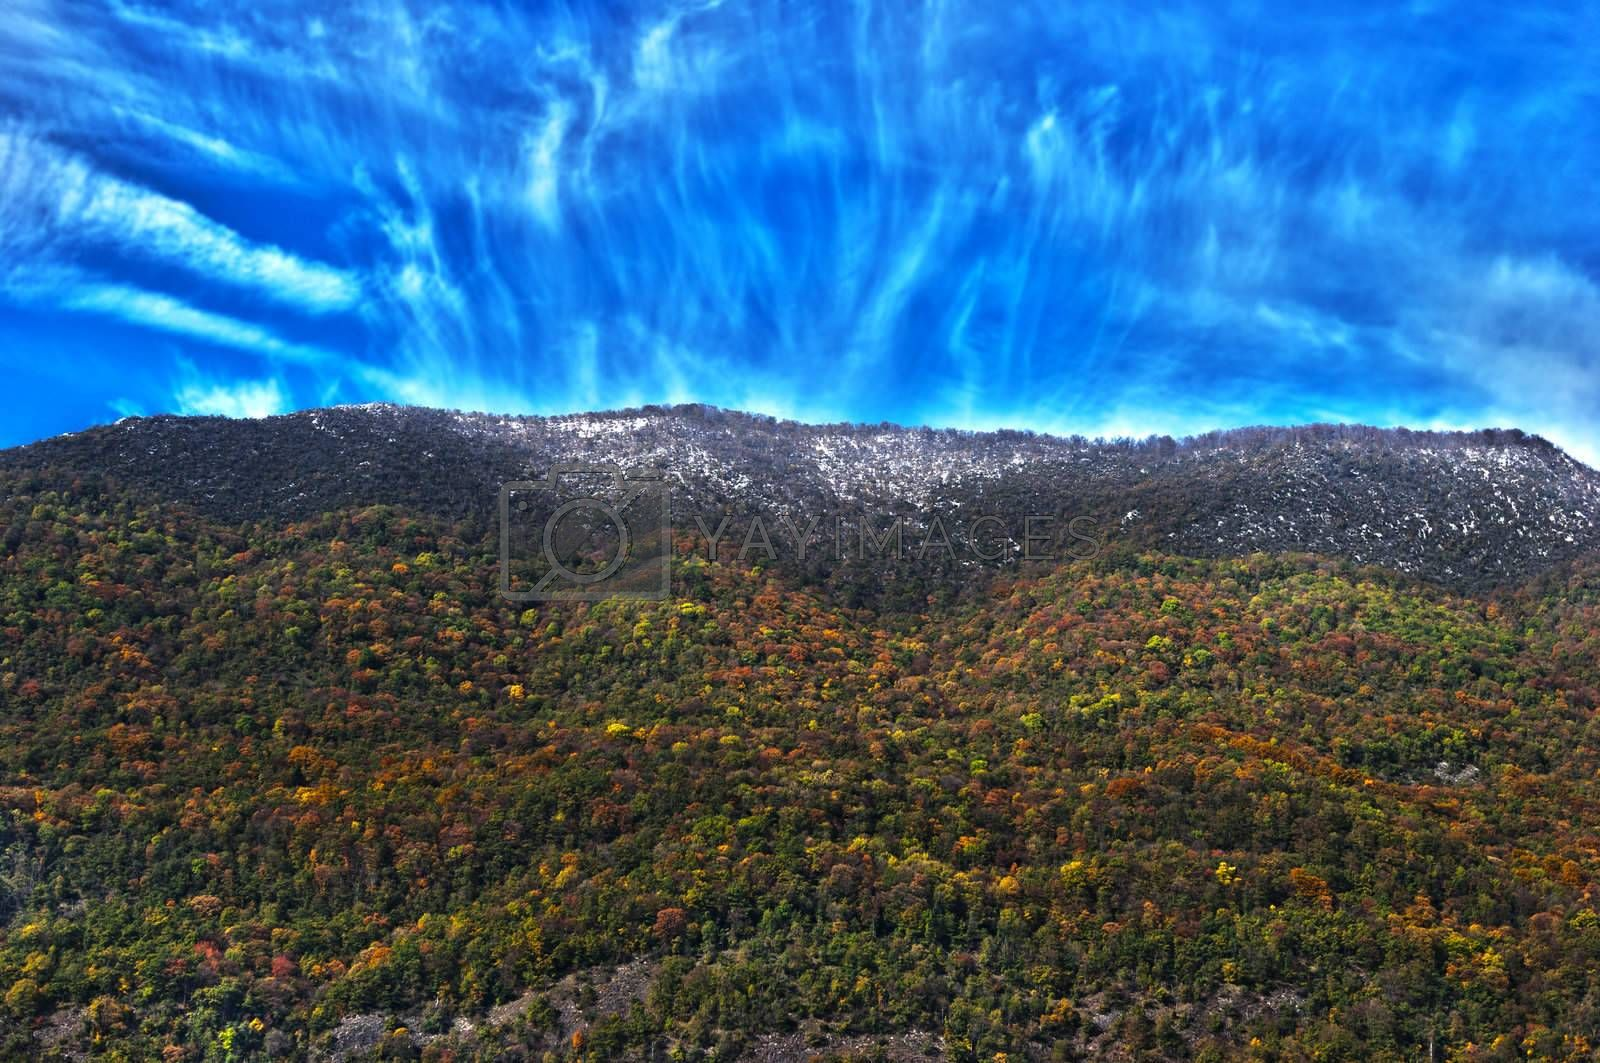 Royalty free image of moutain in autumn by niavuli